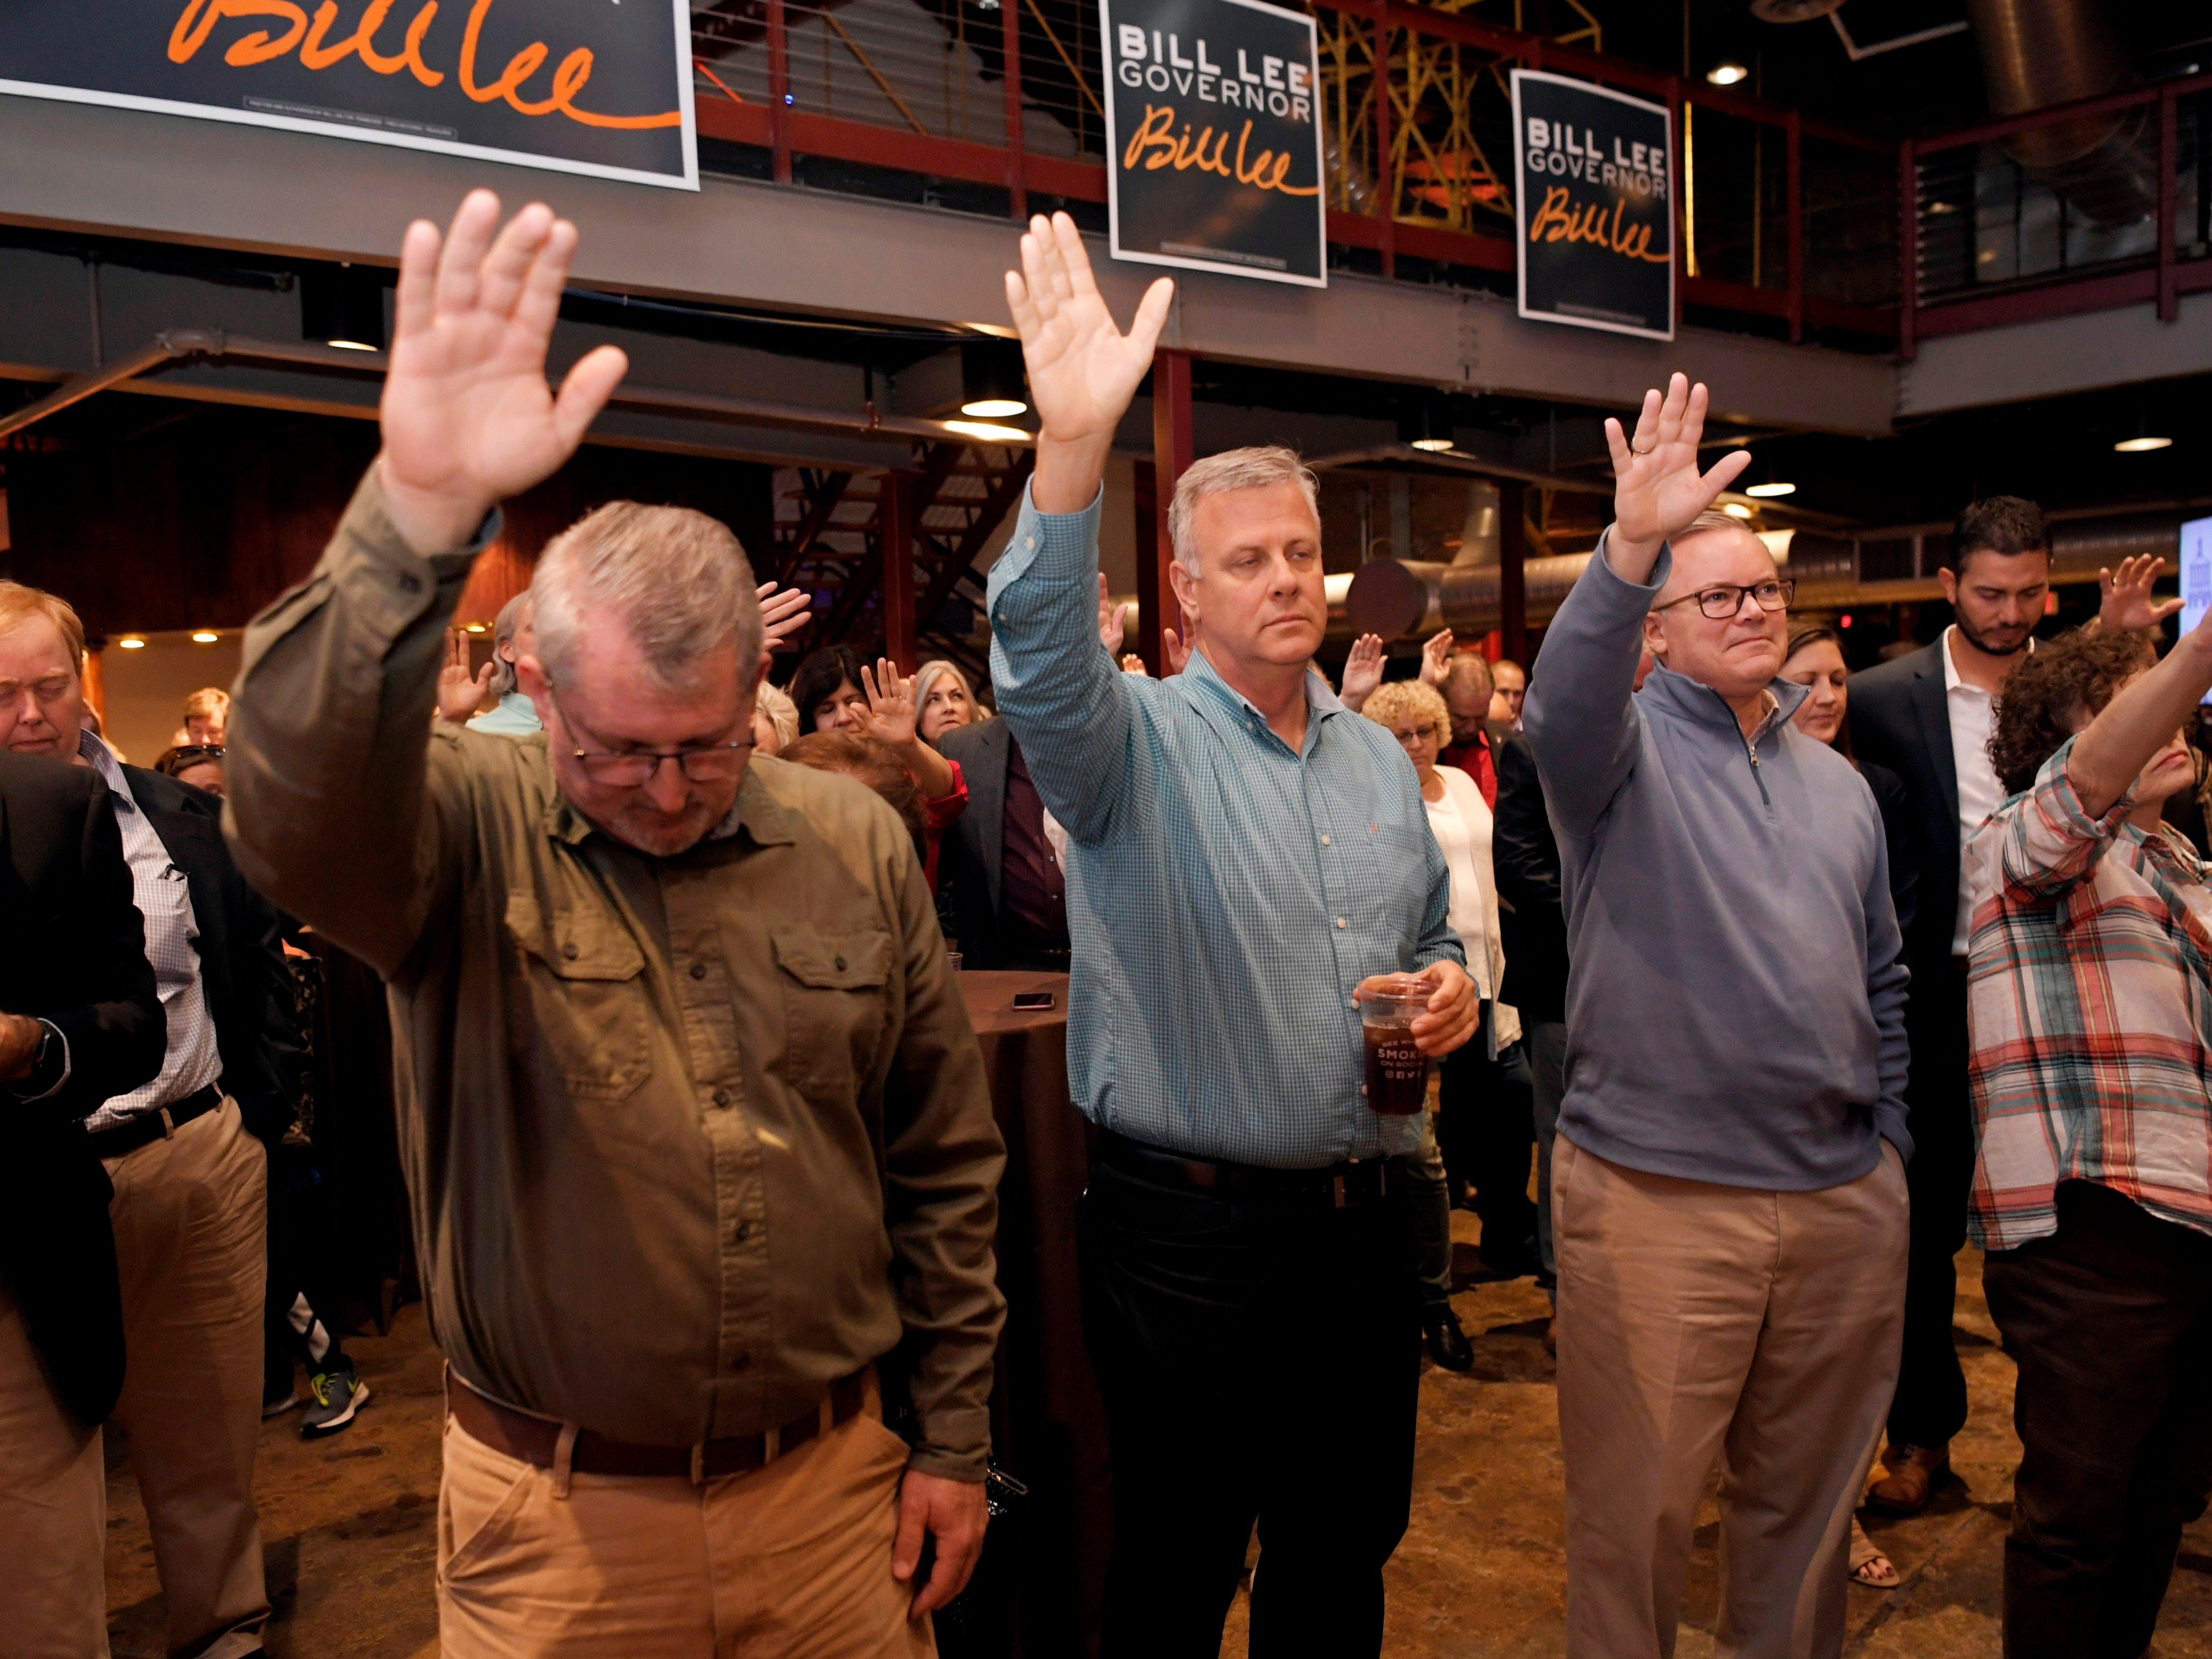 People lift their hands in prayer during the invocation at the election party for Republican gubernatorial candidate Bill Lee at the Factory in Franklin, Tenn. on Tuesday, Nov. 6, 2018.